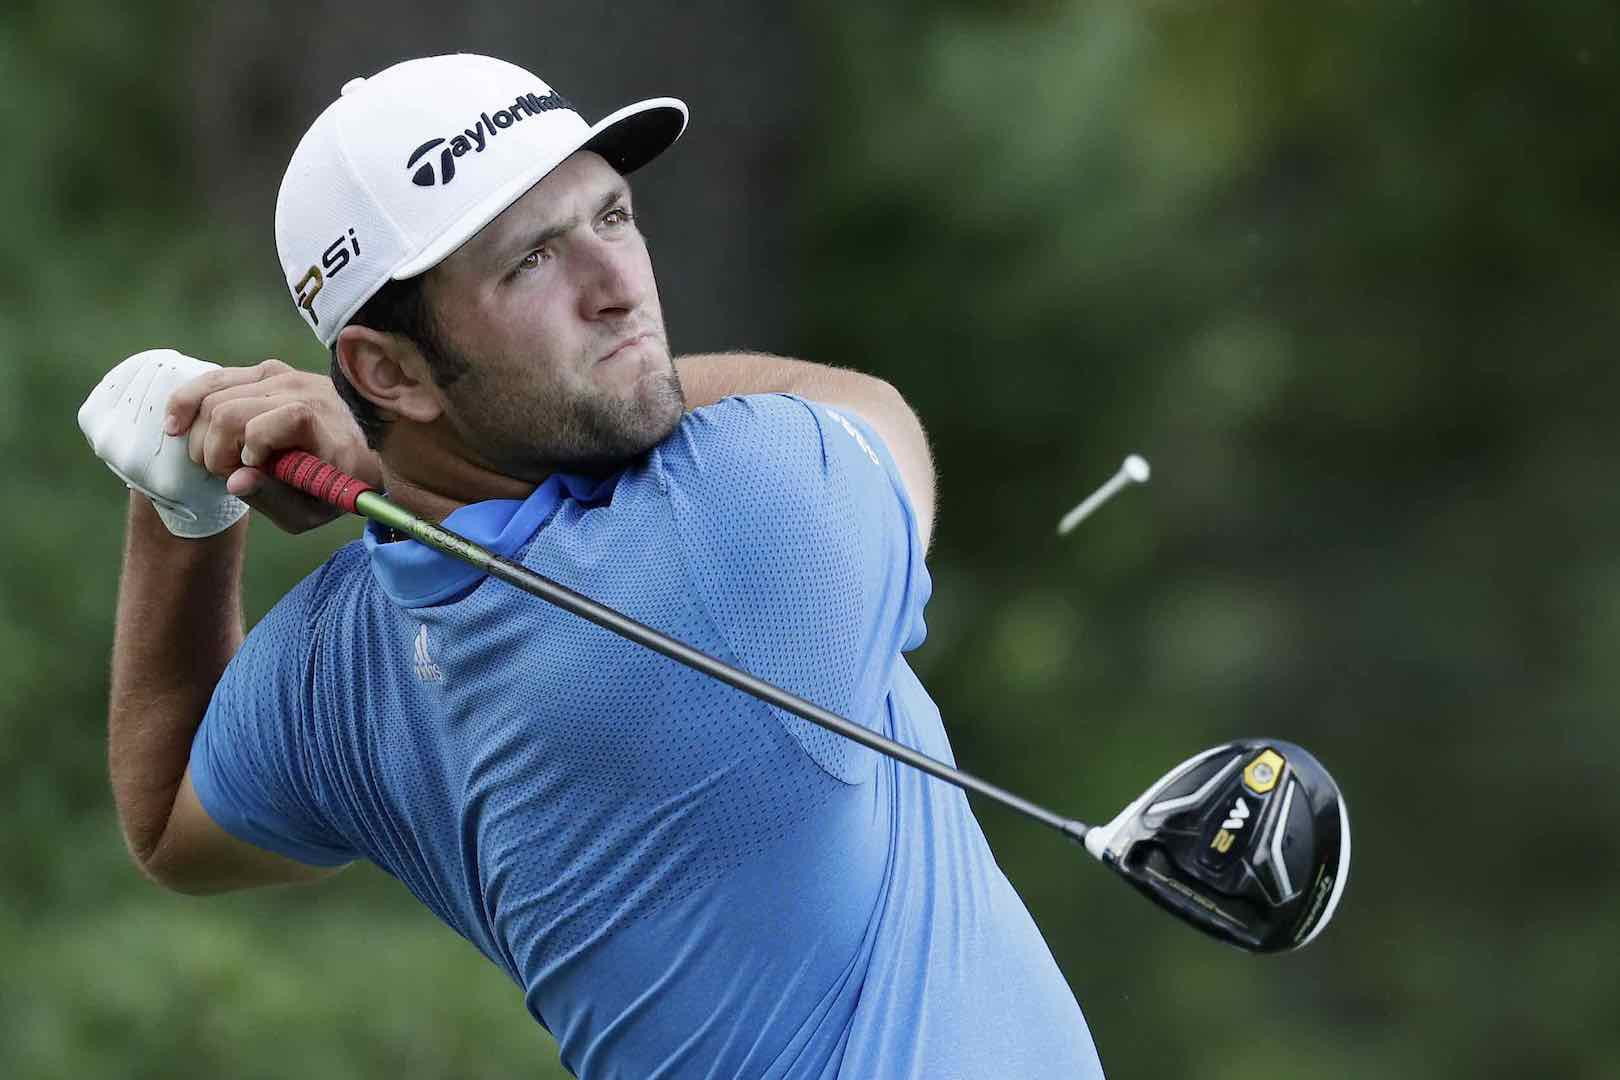 Jon Rahm to tee it up at Irish Open